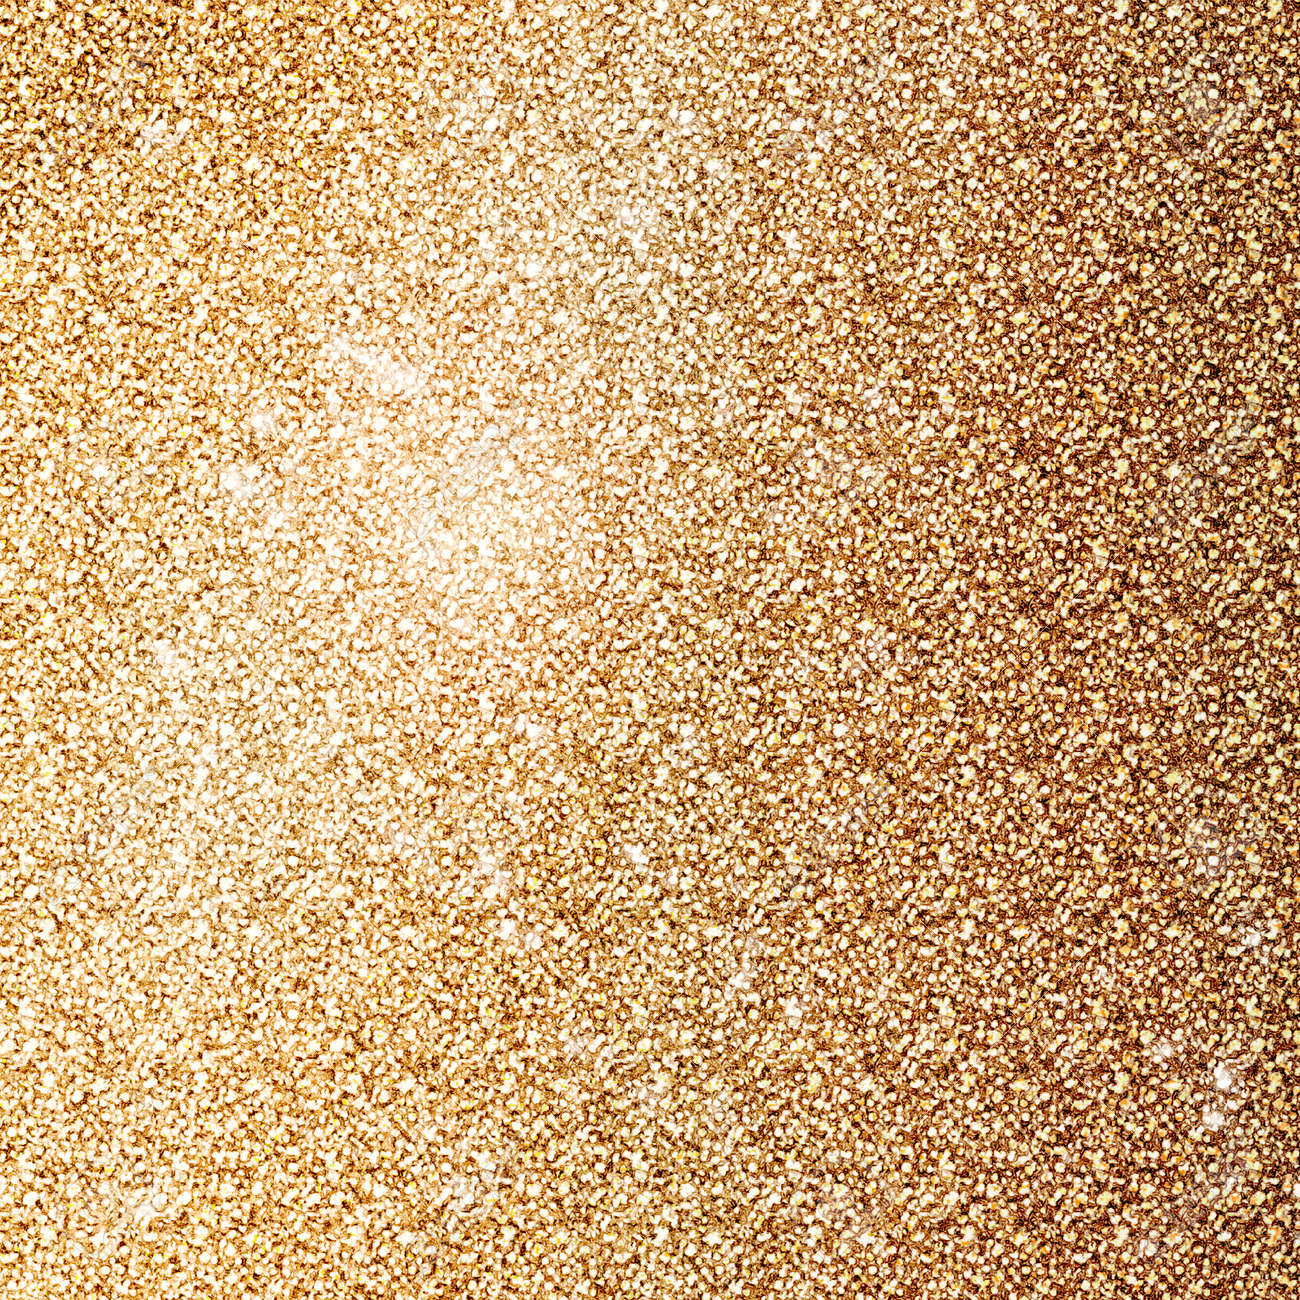 Golden glitter texture. Abstract shiny background. - 162361757